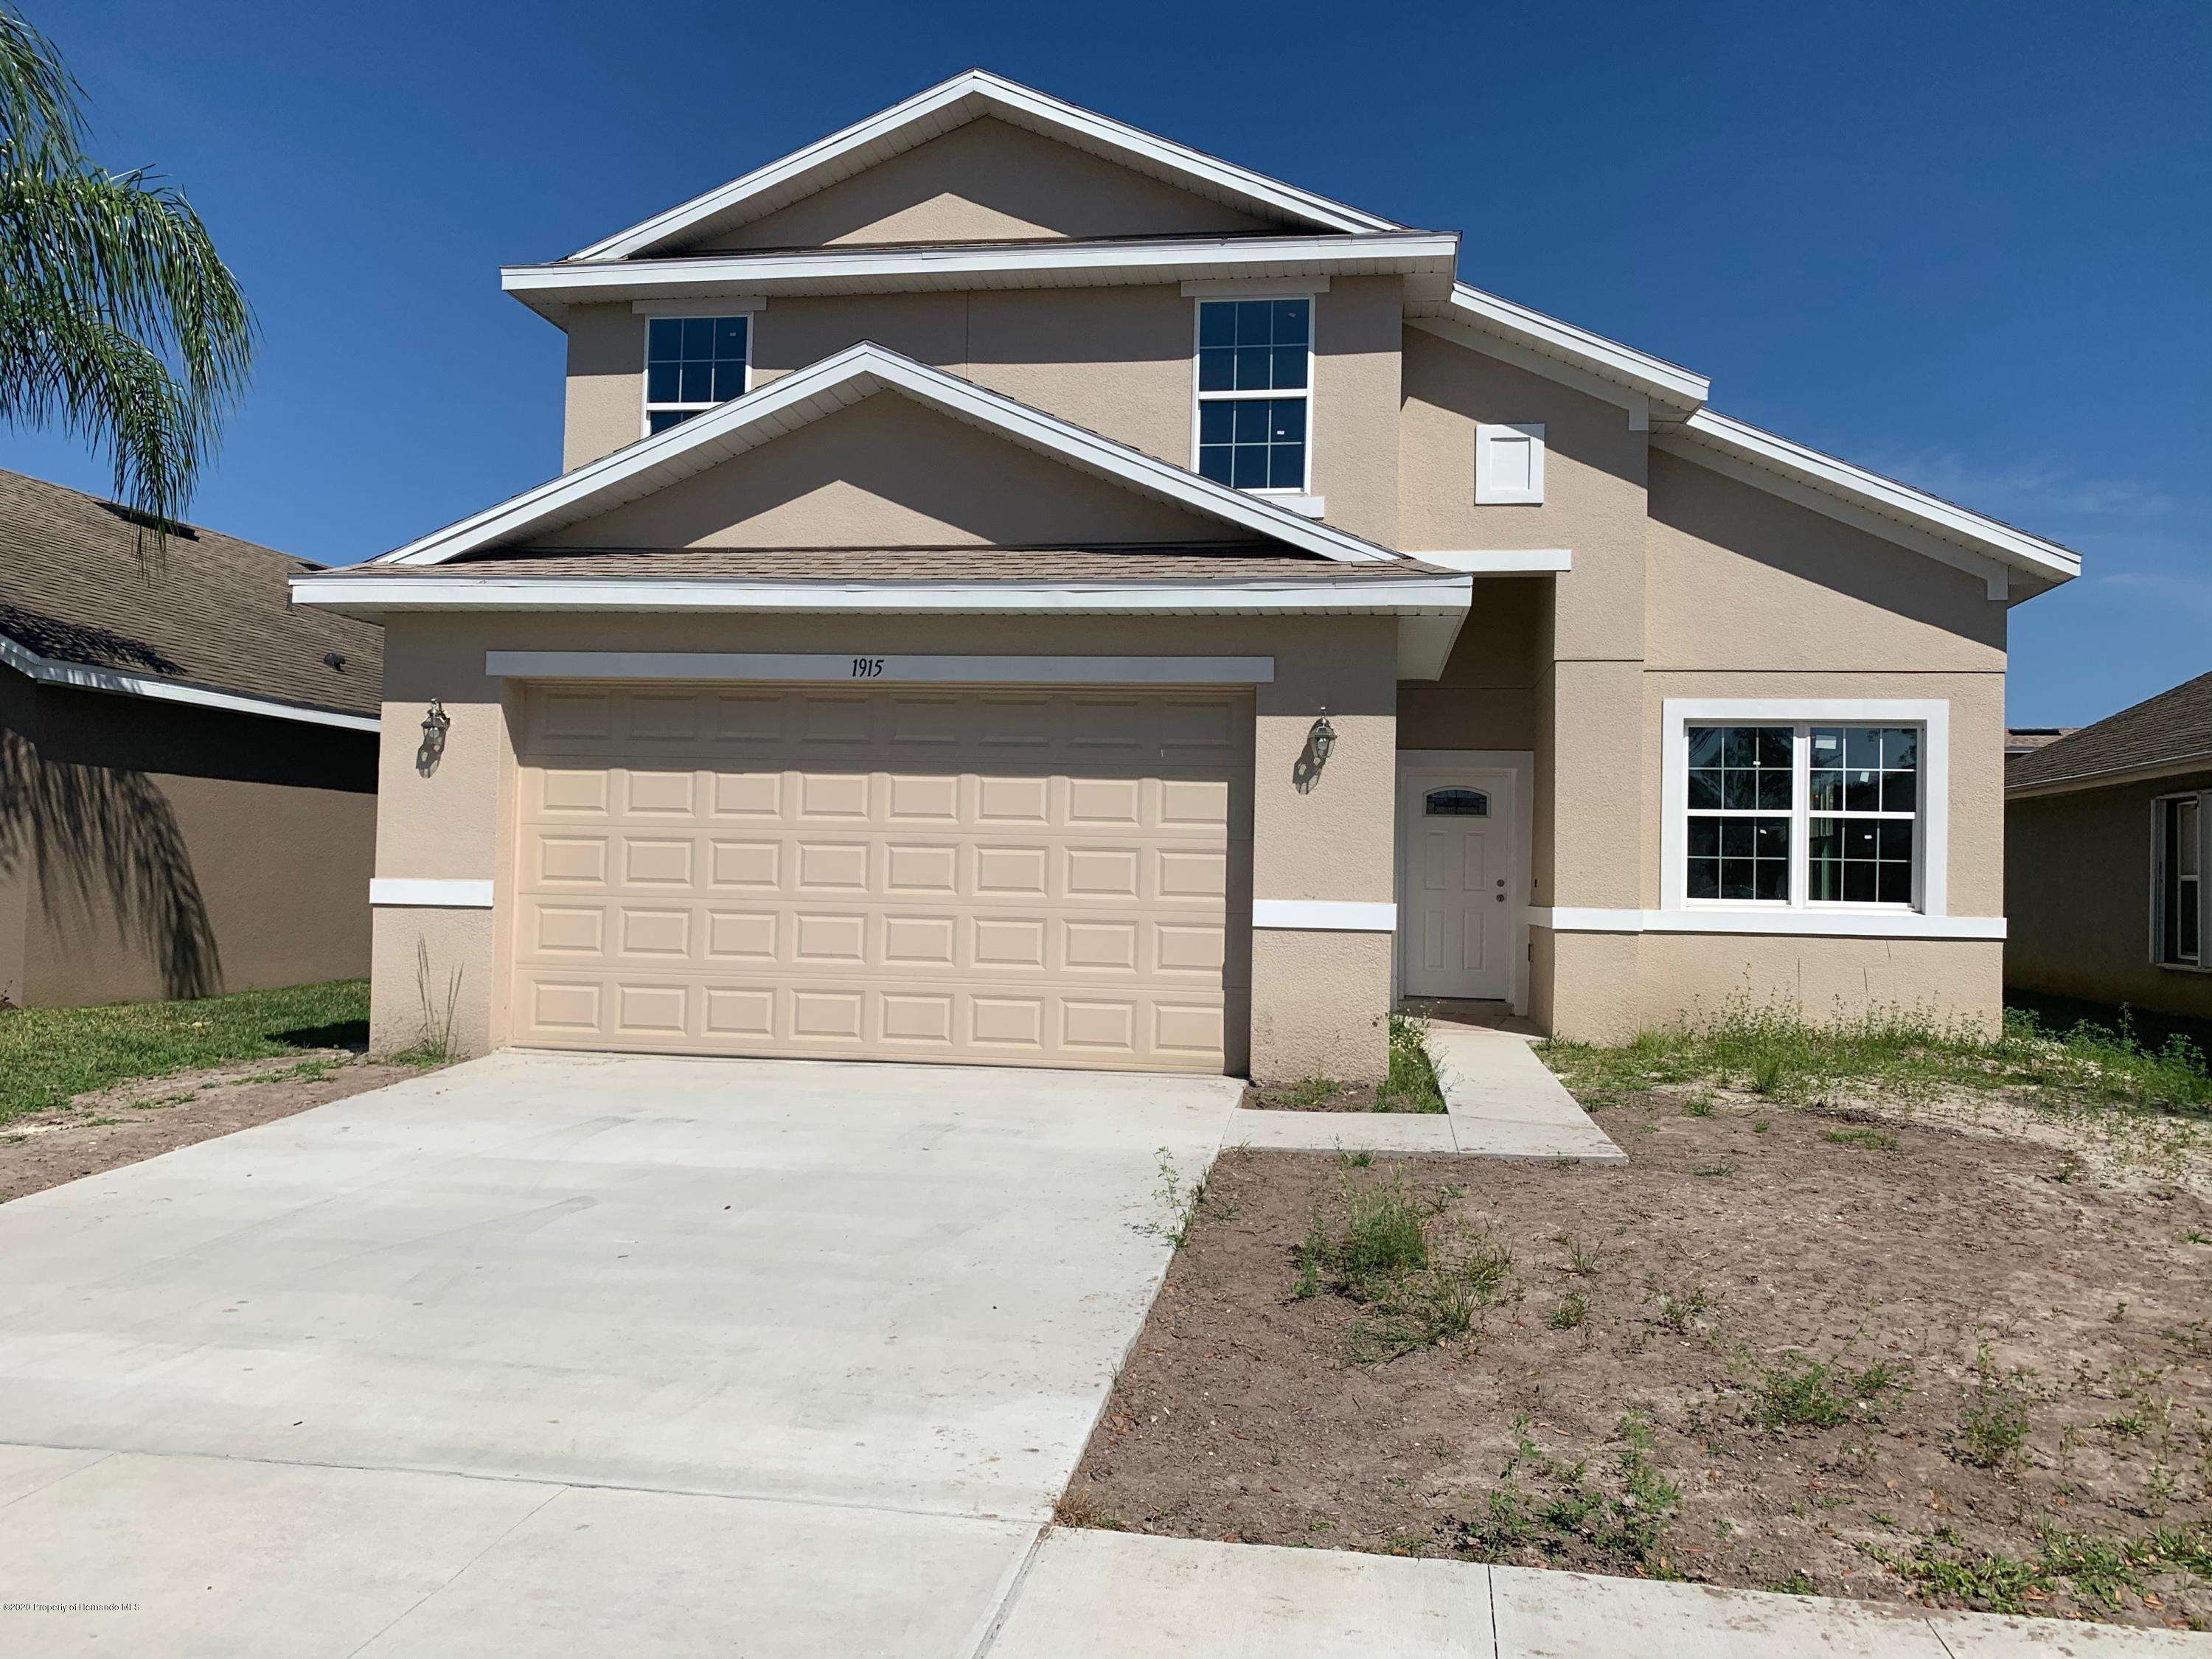 Details for 1915 Commander Way, Kissimmee, FL 34746